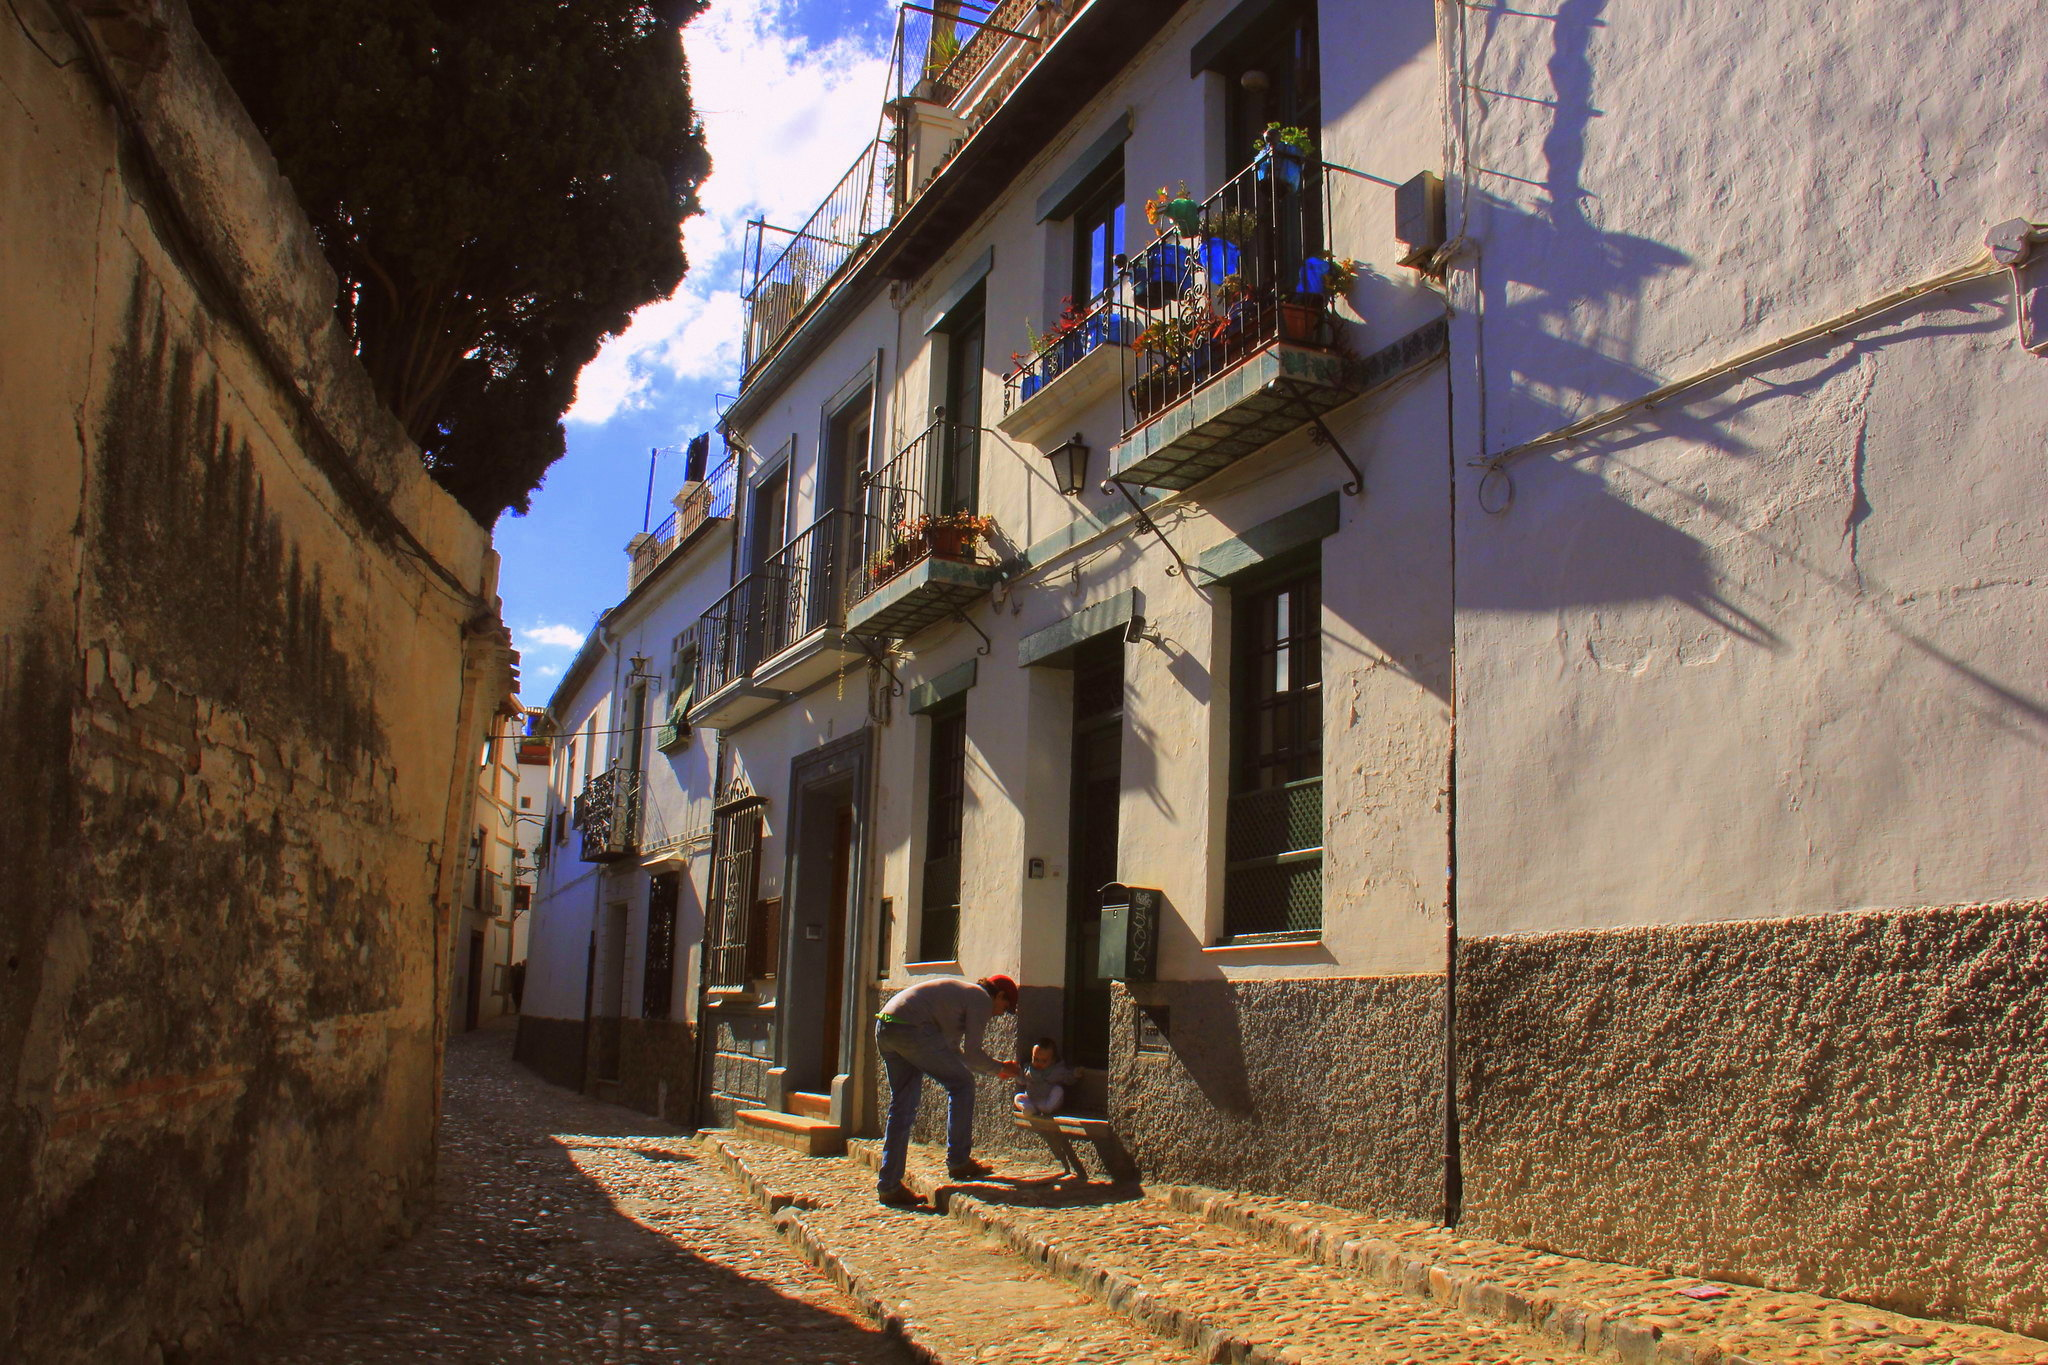 Albayzin is one of the most photogenic quarters of Granada